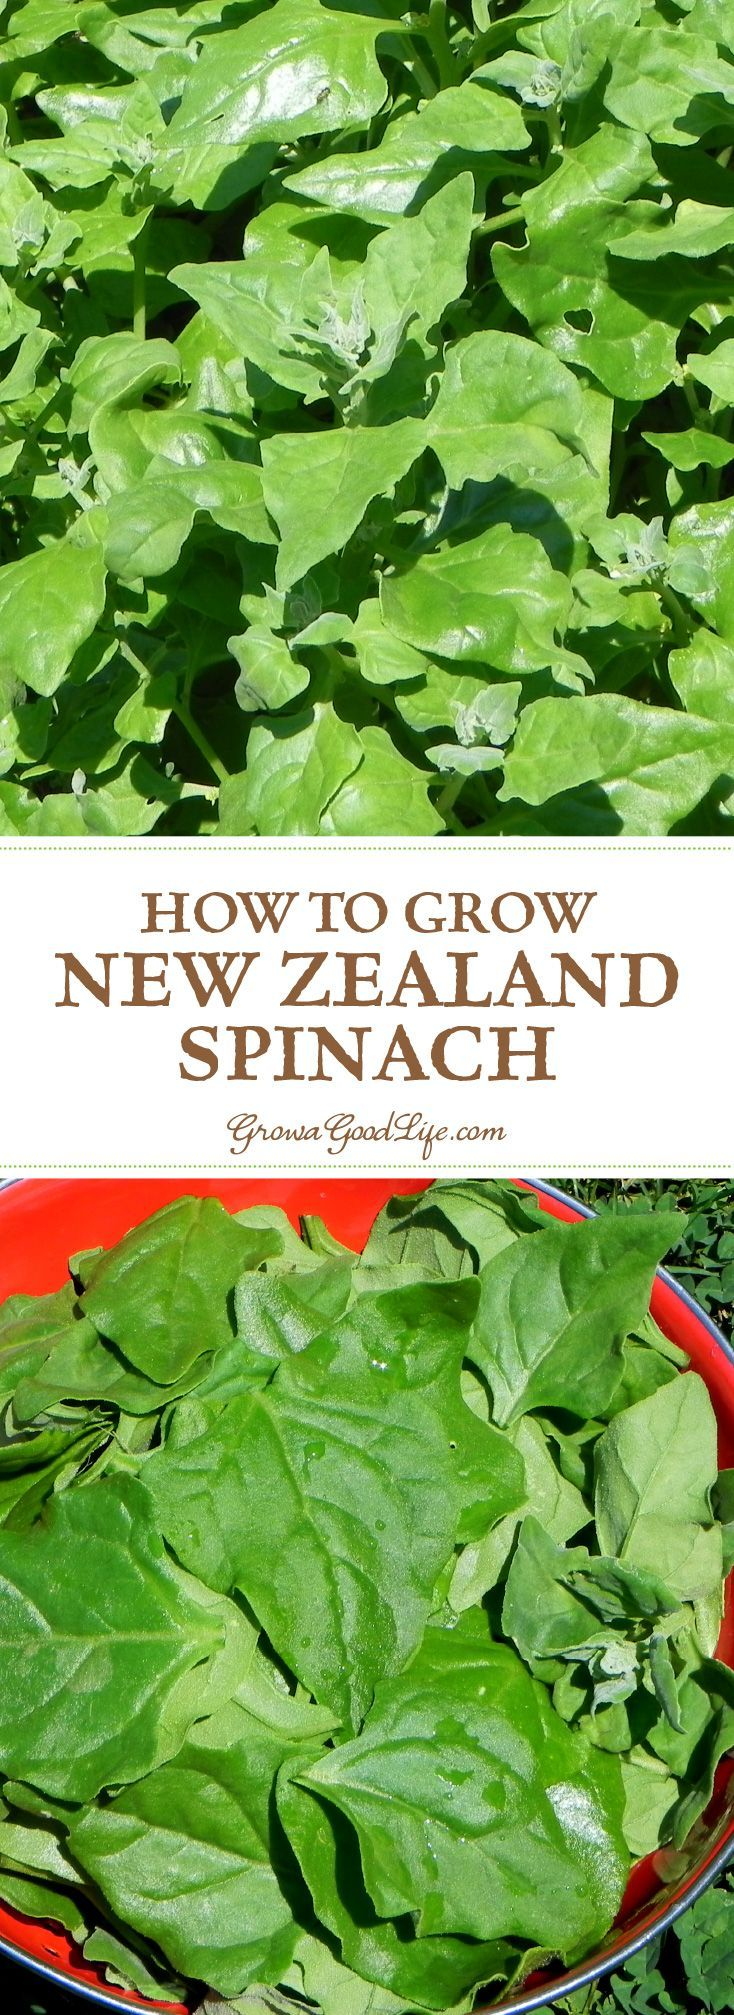 vegetable planting guide new zealand